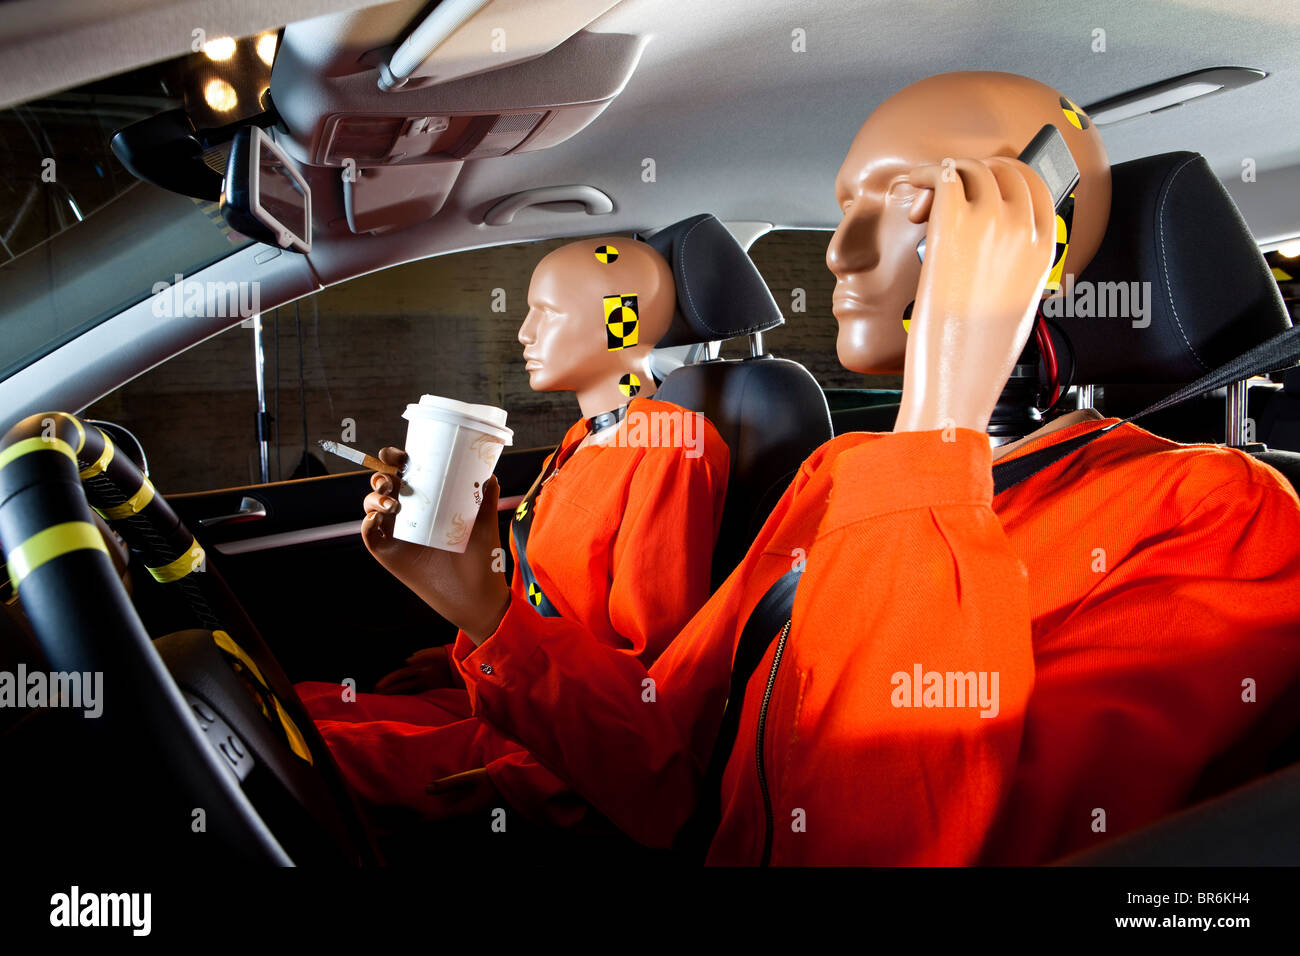 A crash test dummy carelessly using a mobile phone while driving with a crash test dummy passenger - Stock Image